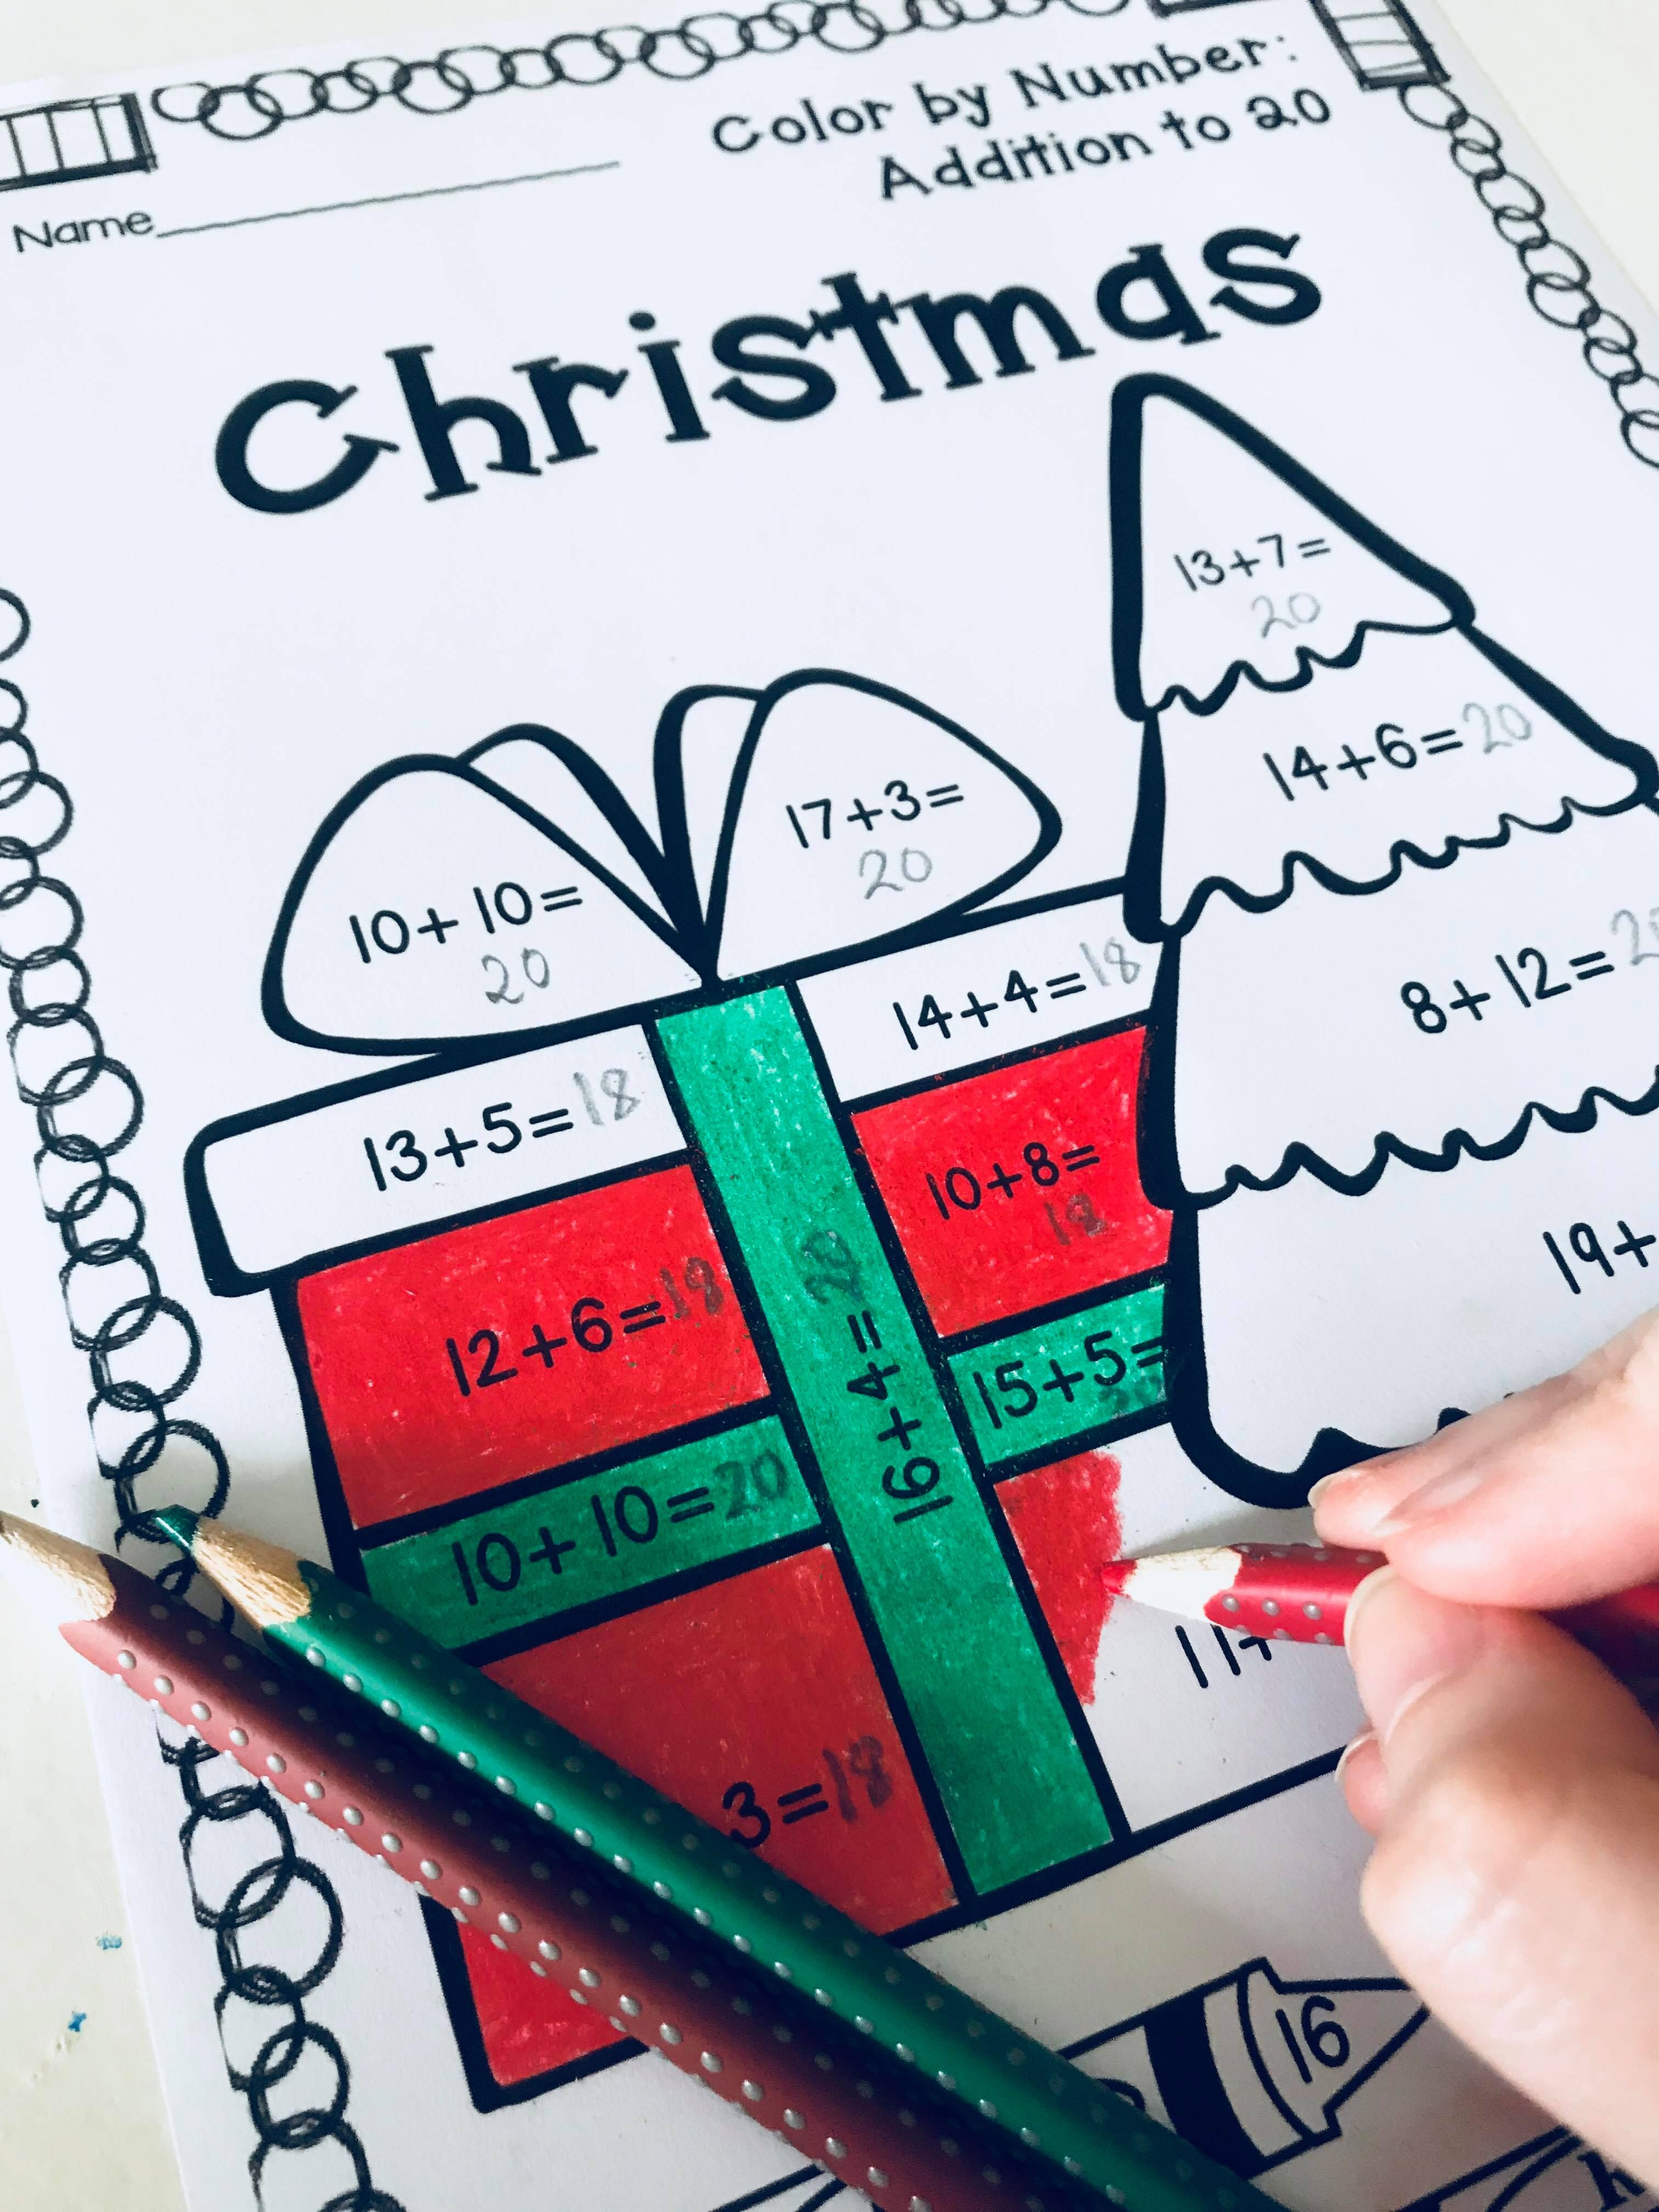 Christmas Color By Addition